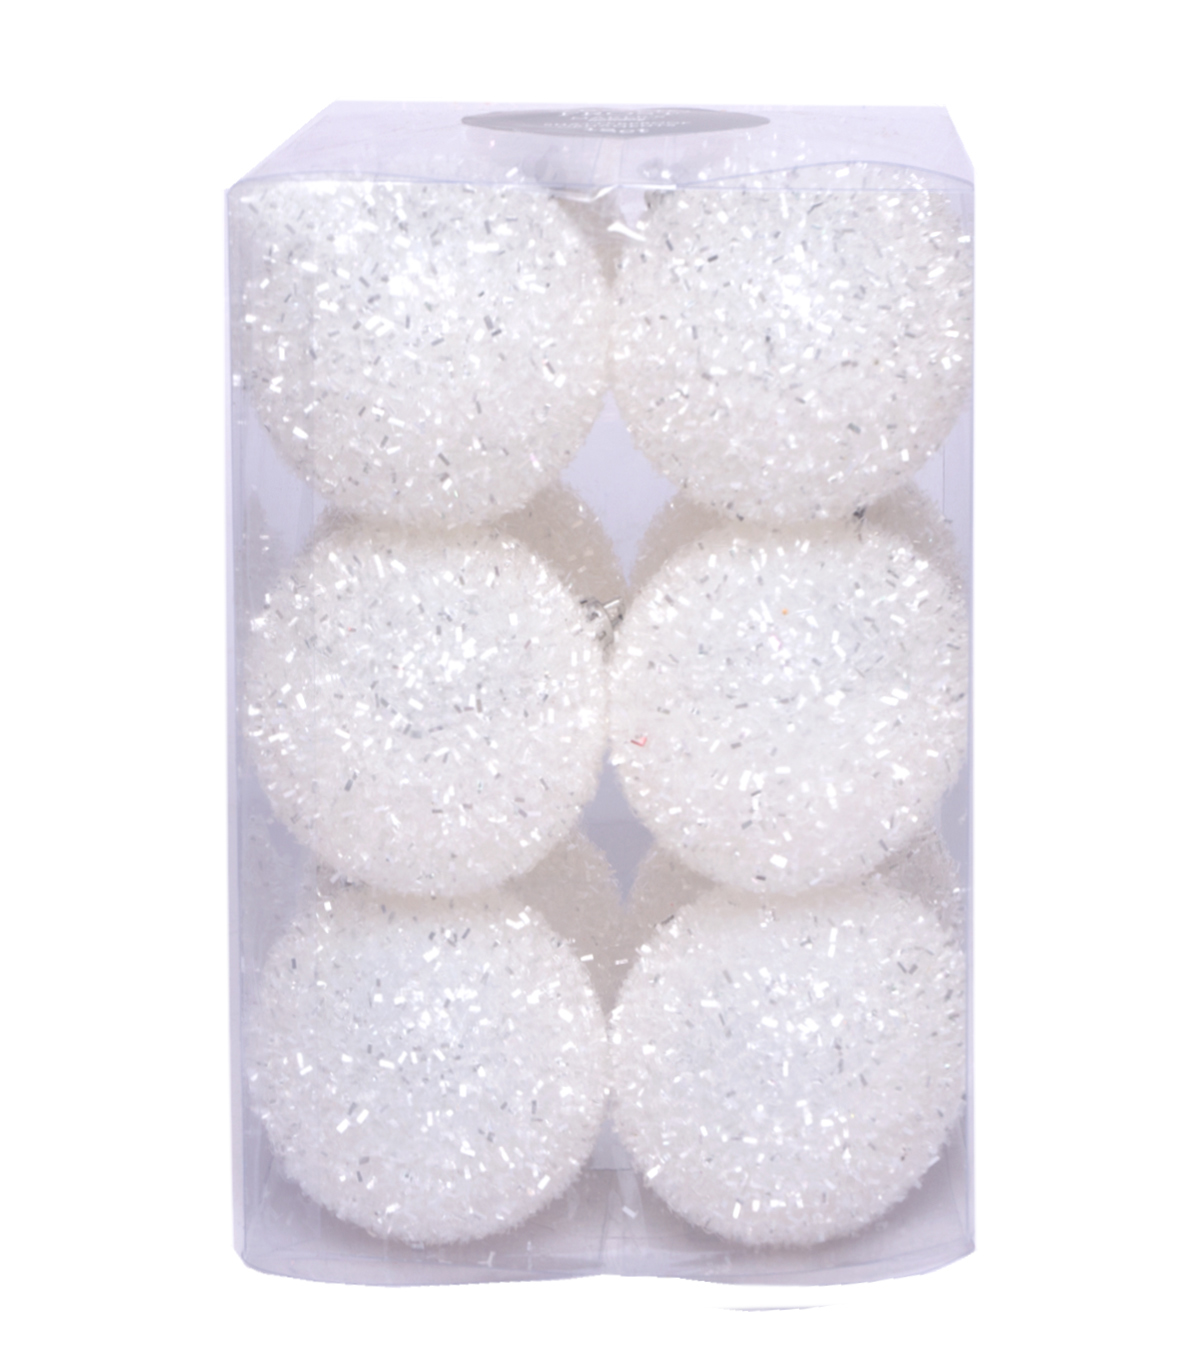 Maker\u0027s Holiday Christmas 12 pk Tinsel Ball Ornaments-White